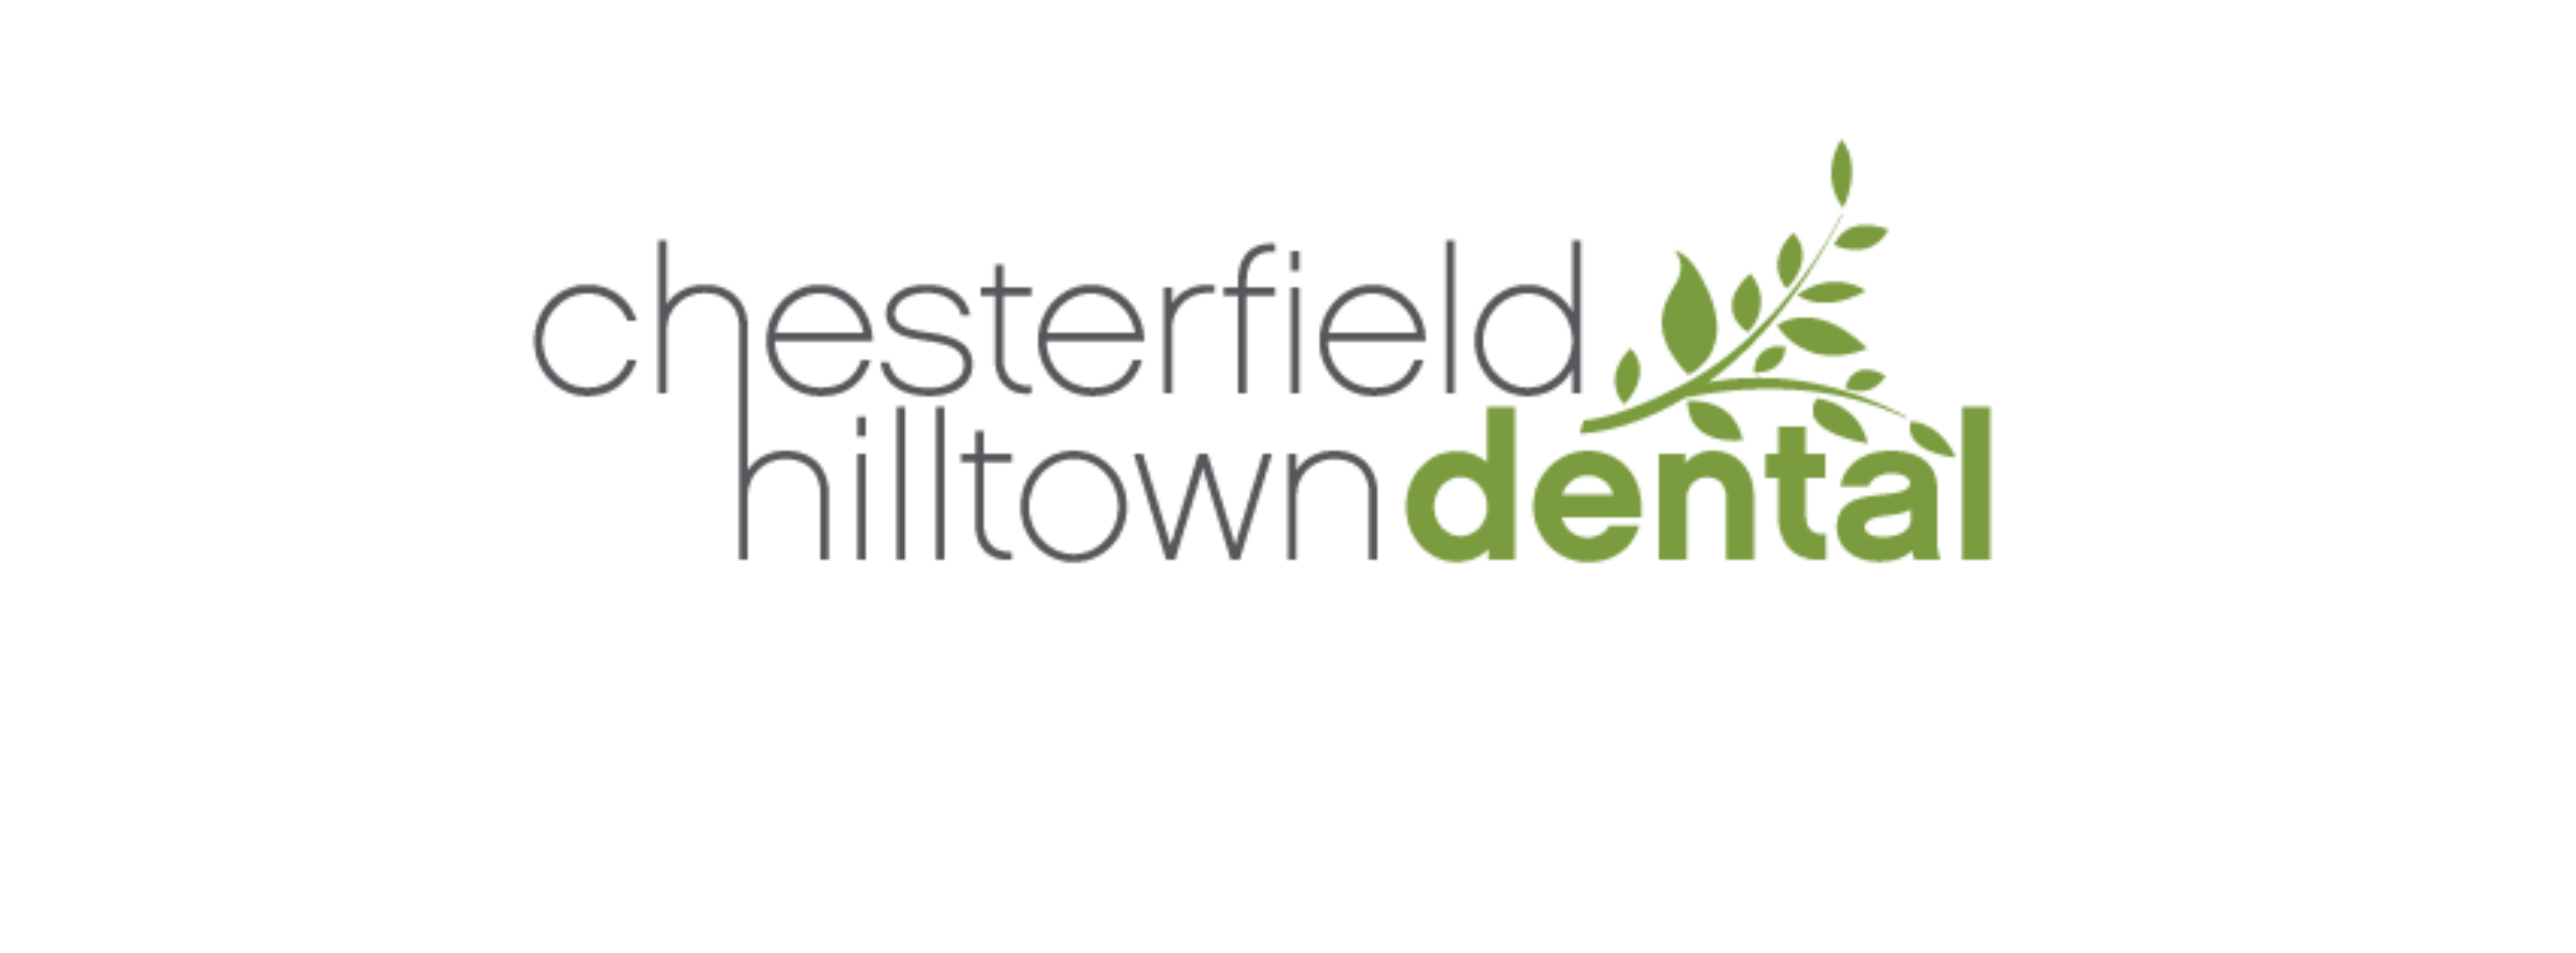 Chesterfield Hilltown Dental DDS image 0